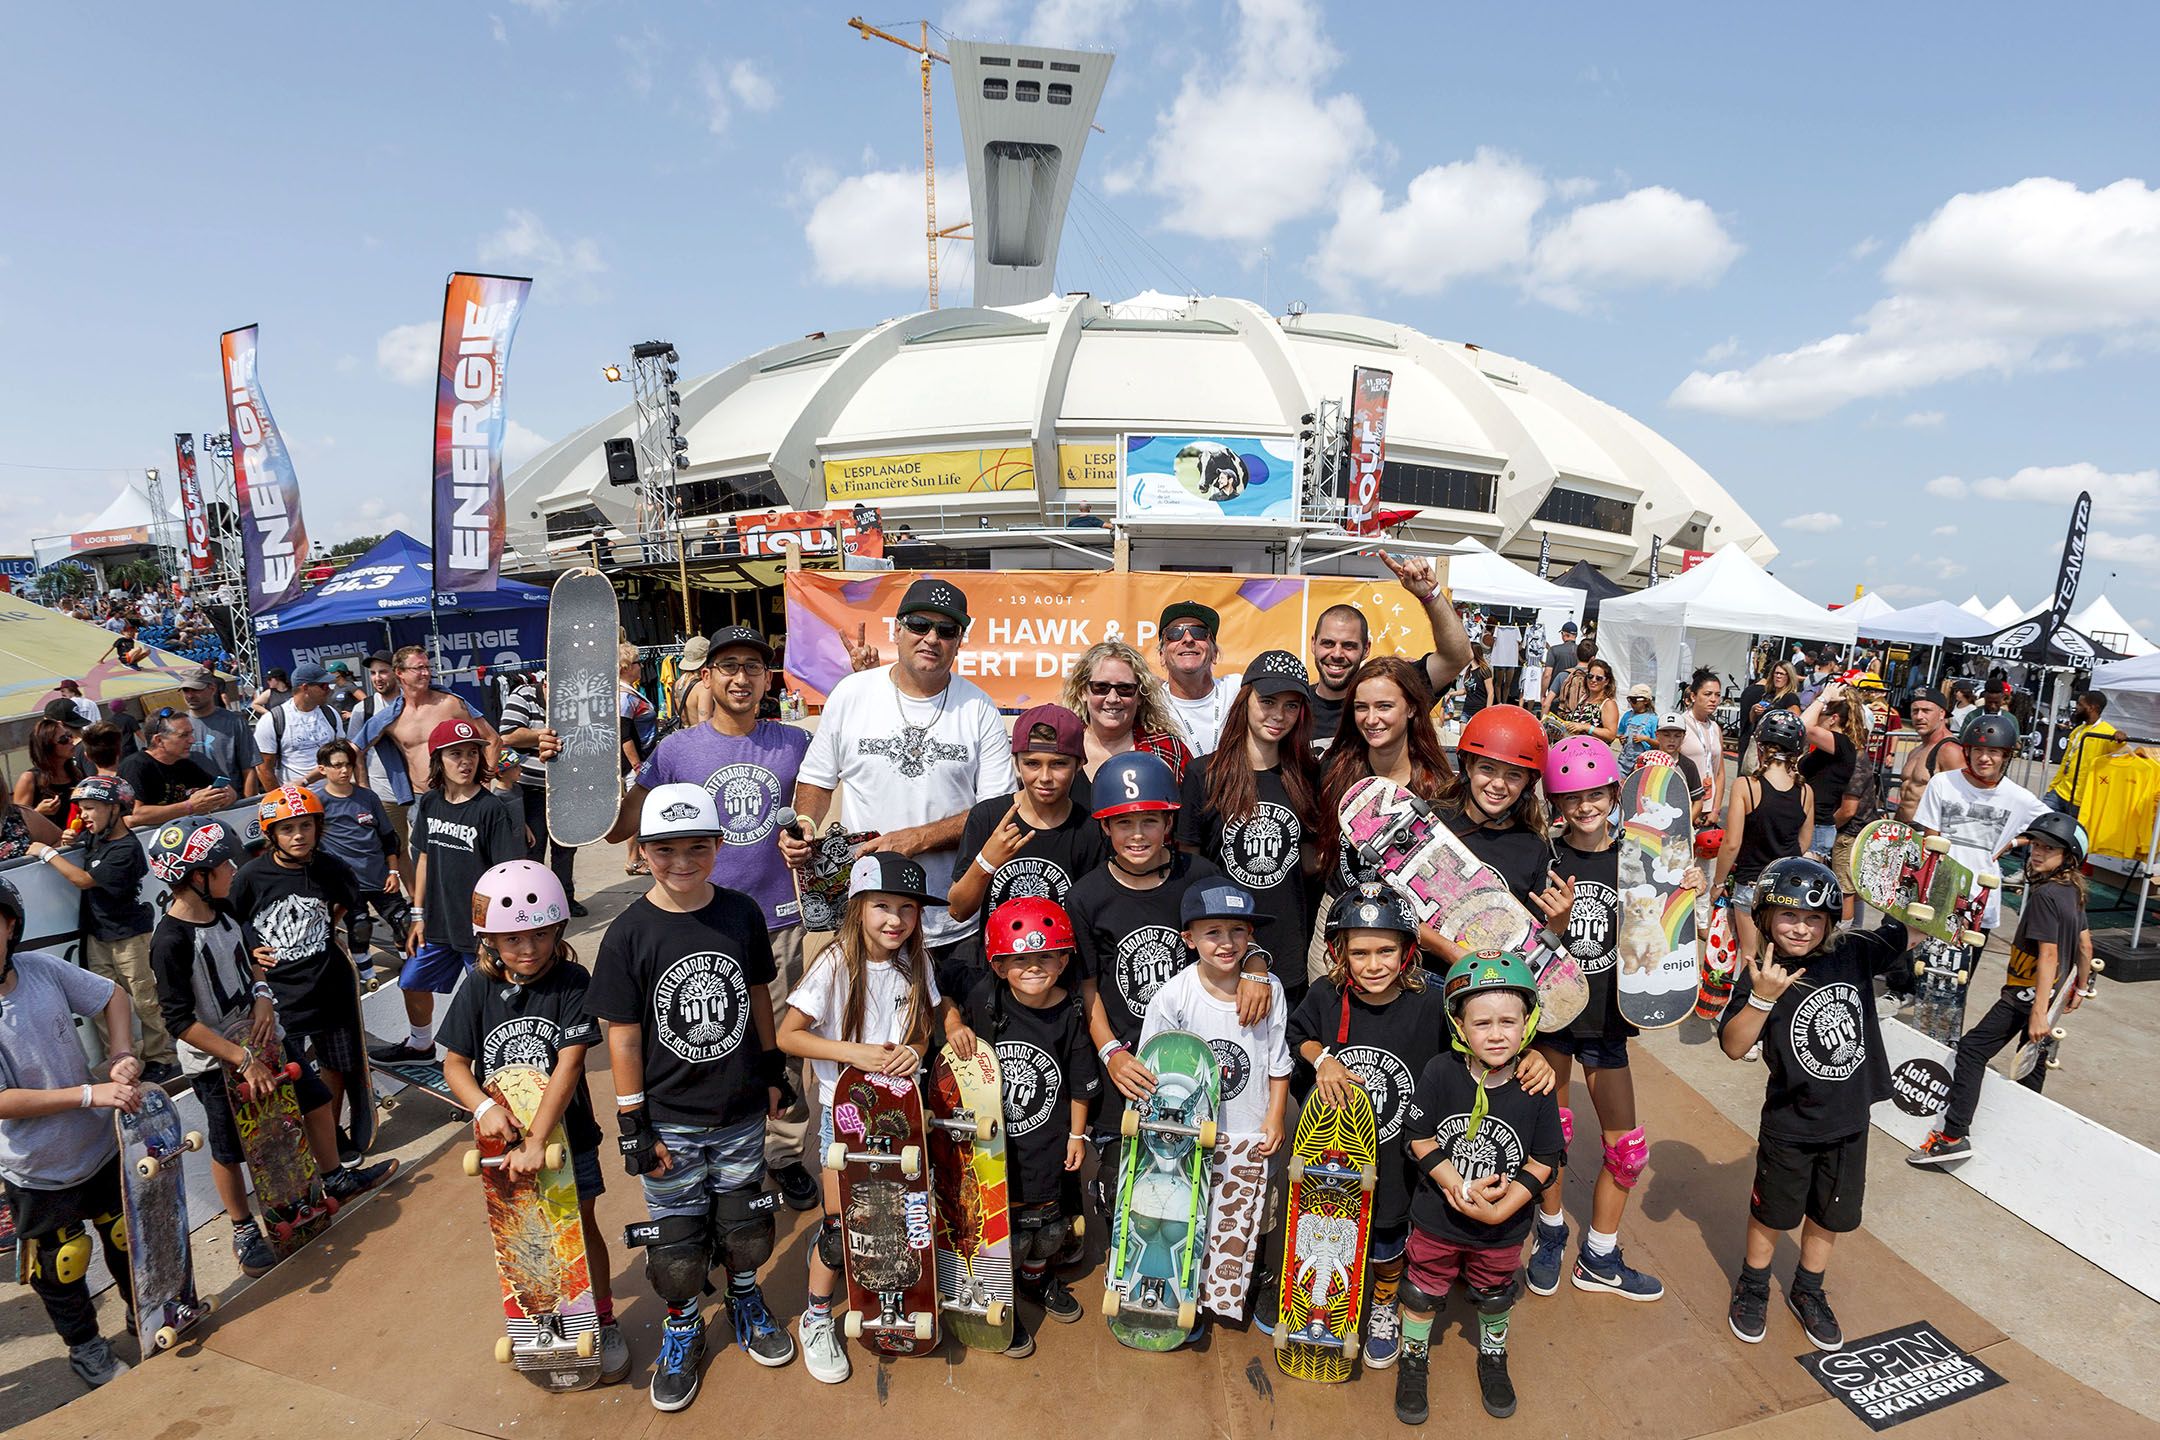 Skateboards For Hope and World Cup